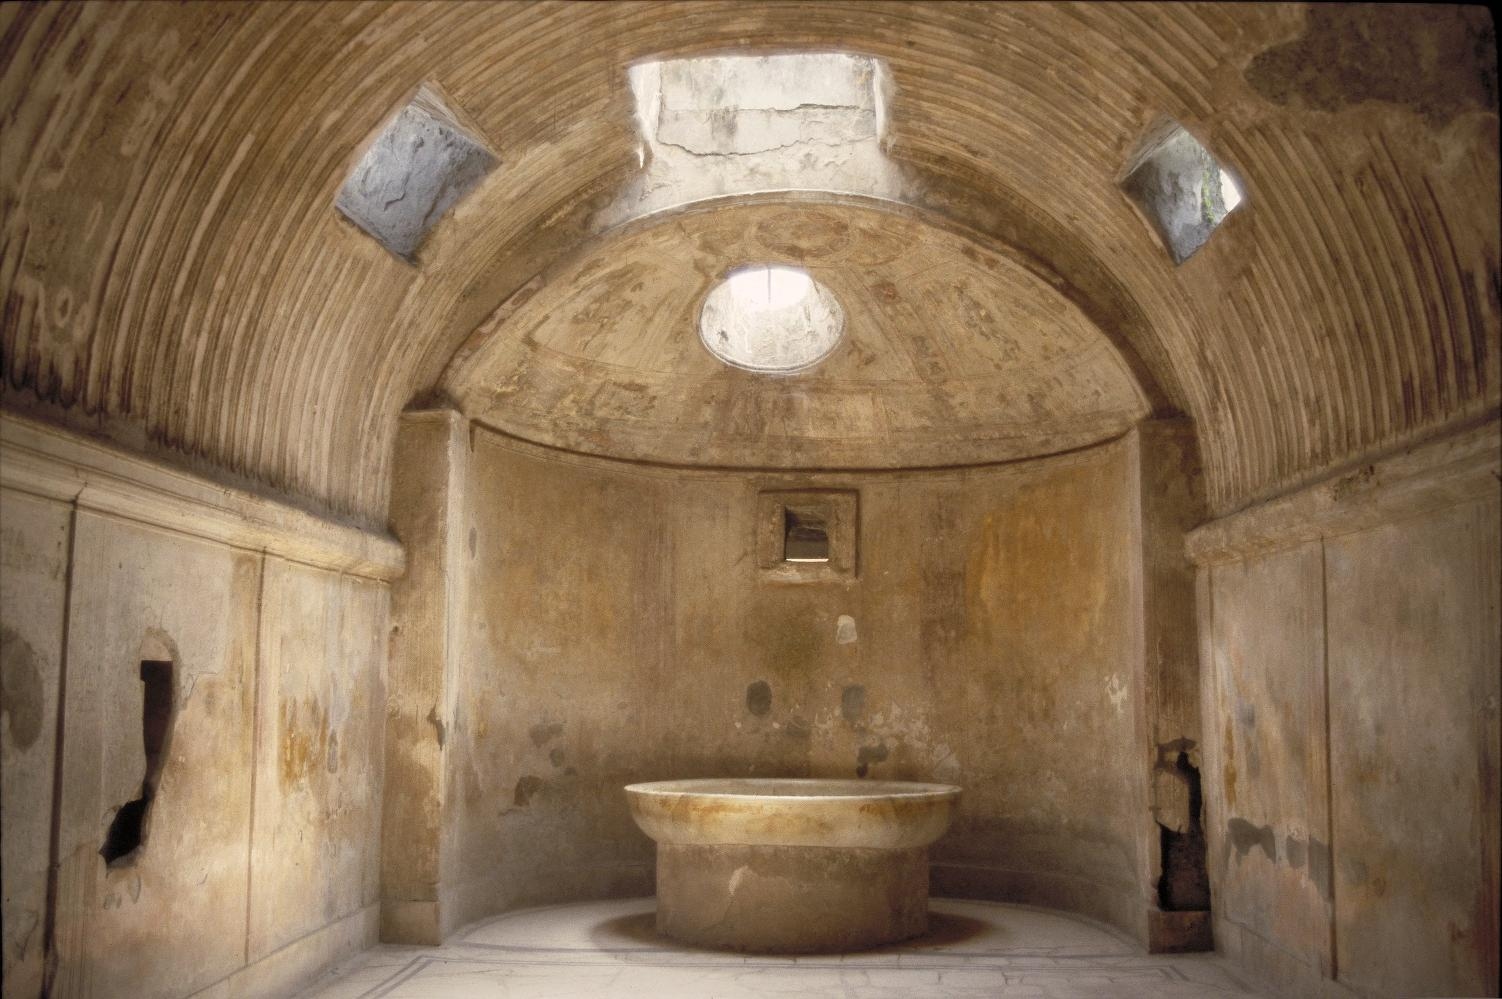 Art Images for College Teaching: Forum Baths, Pompeii